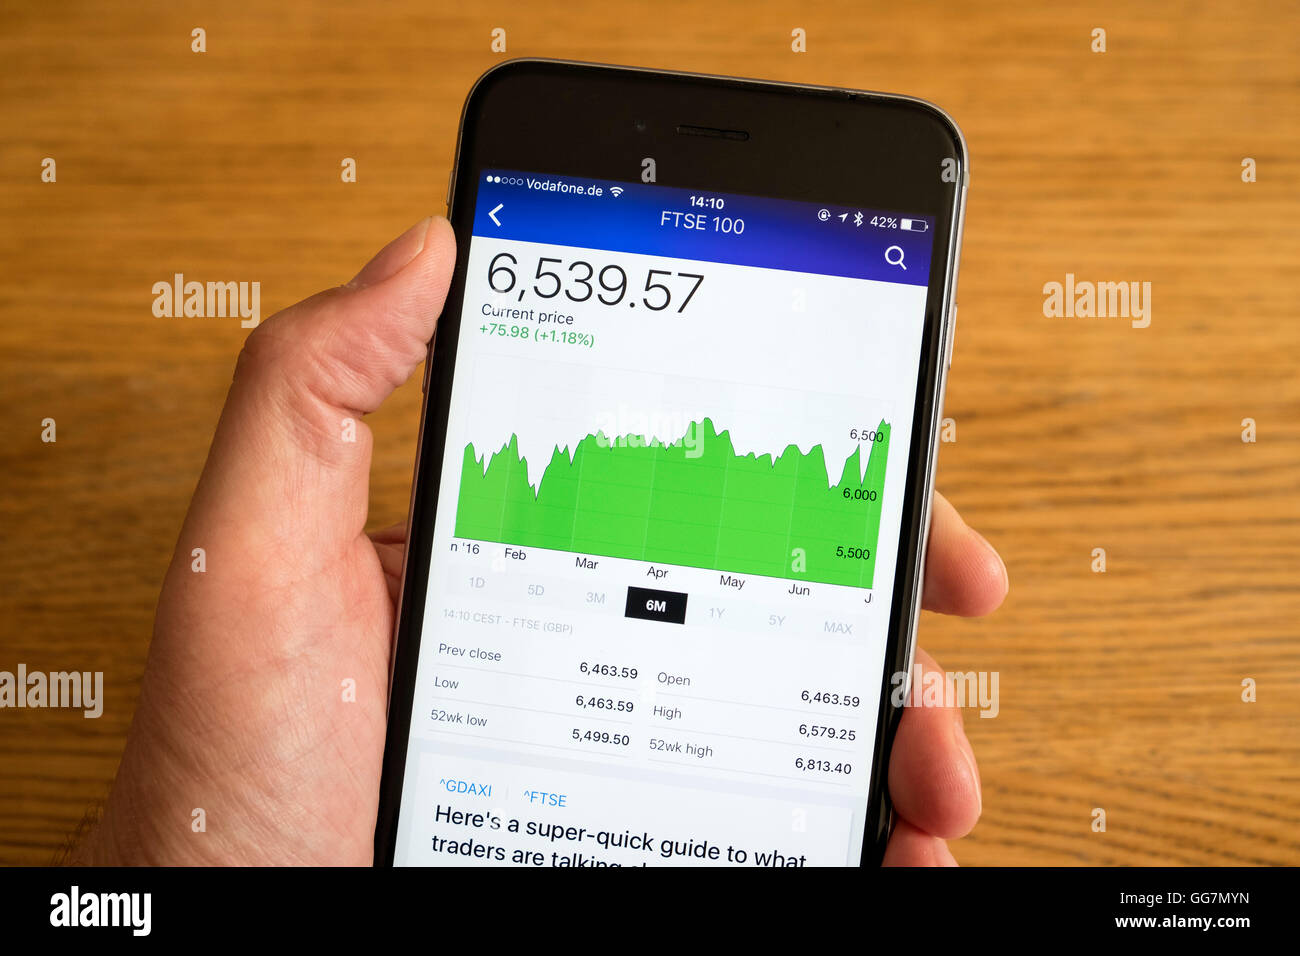 Detail of stock market performance of FTSE   stock exchange  on a smart phone - Stock Image